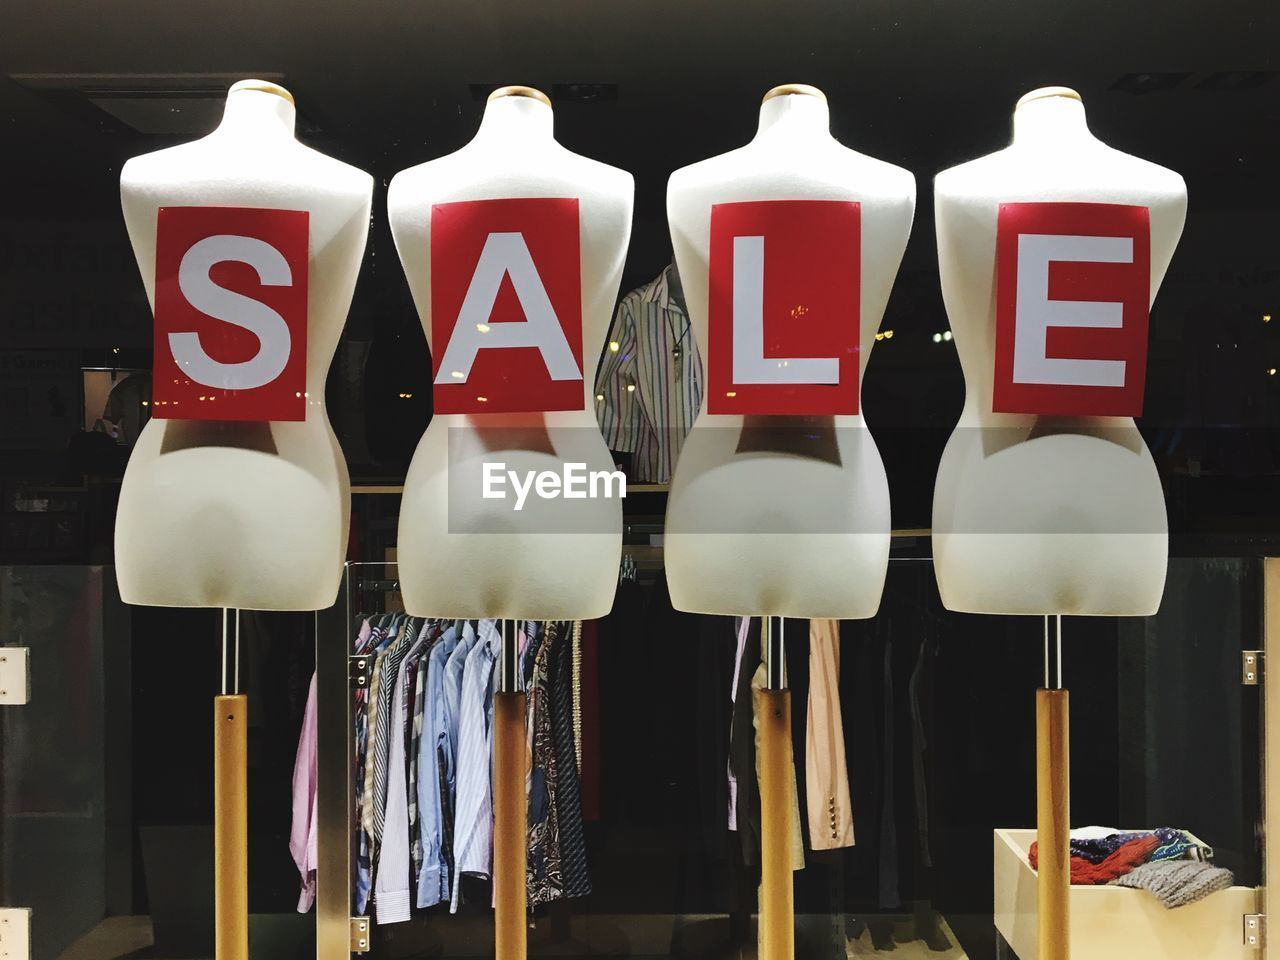 side by side, indoors, no people, large group of objects, still life, text, retail display, retail, in a row, western script, hanging, white color, sale, collection, mannequin, communication, for sale, close-up, store, arrangement